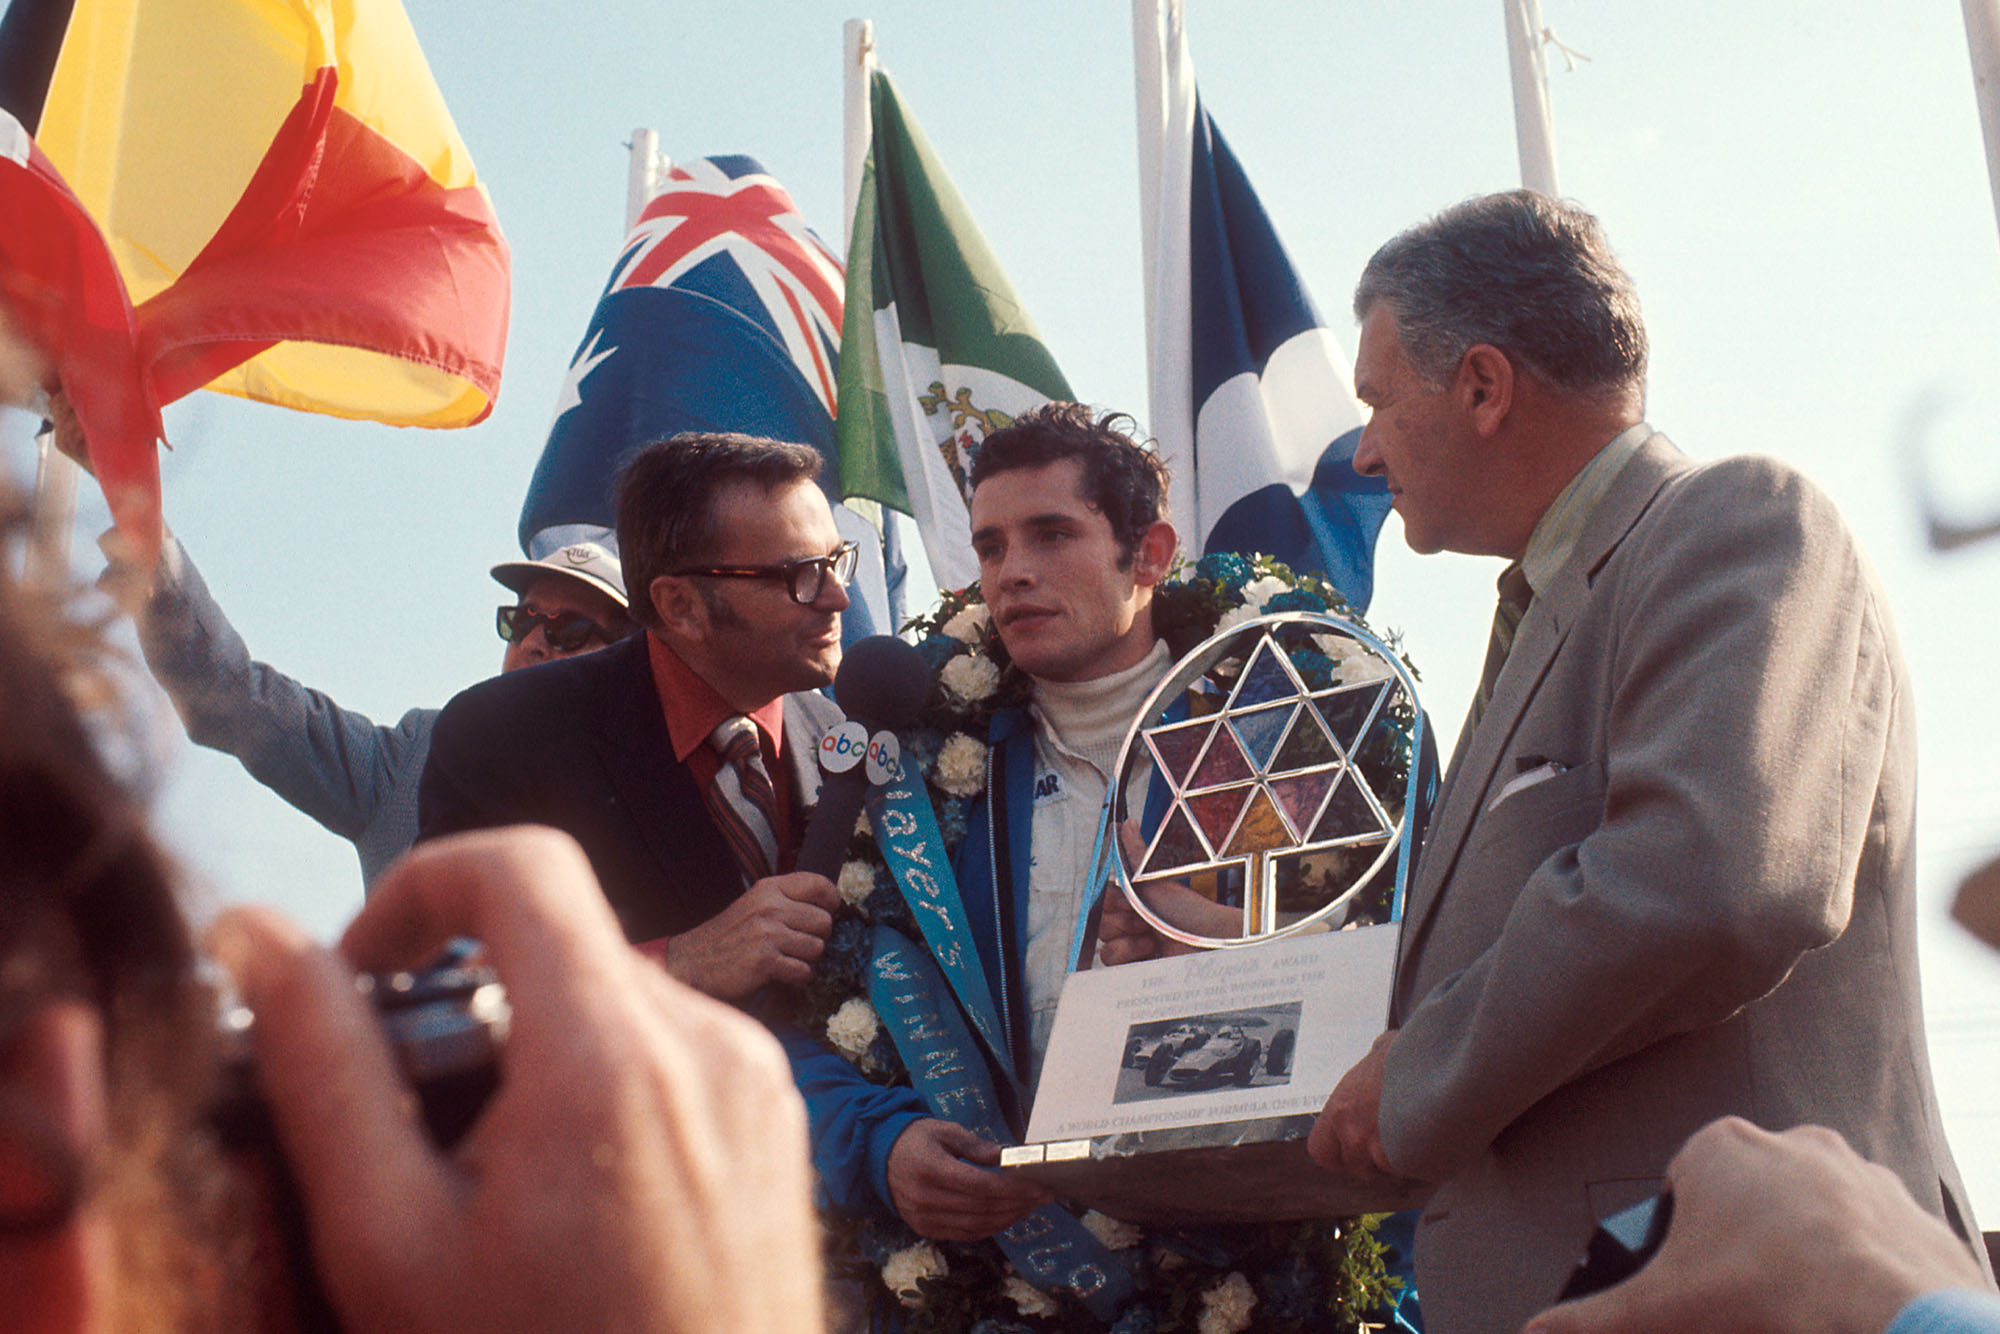 Jacky Ickx is interviewed on the podium after winning the 1969 Canadian Grand Prix